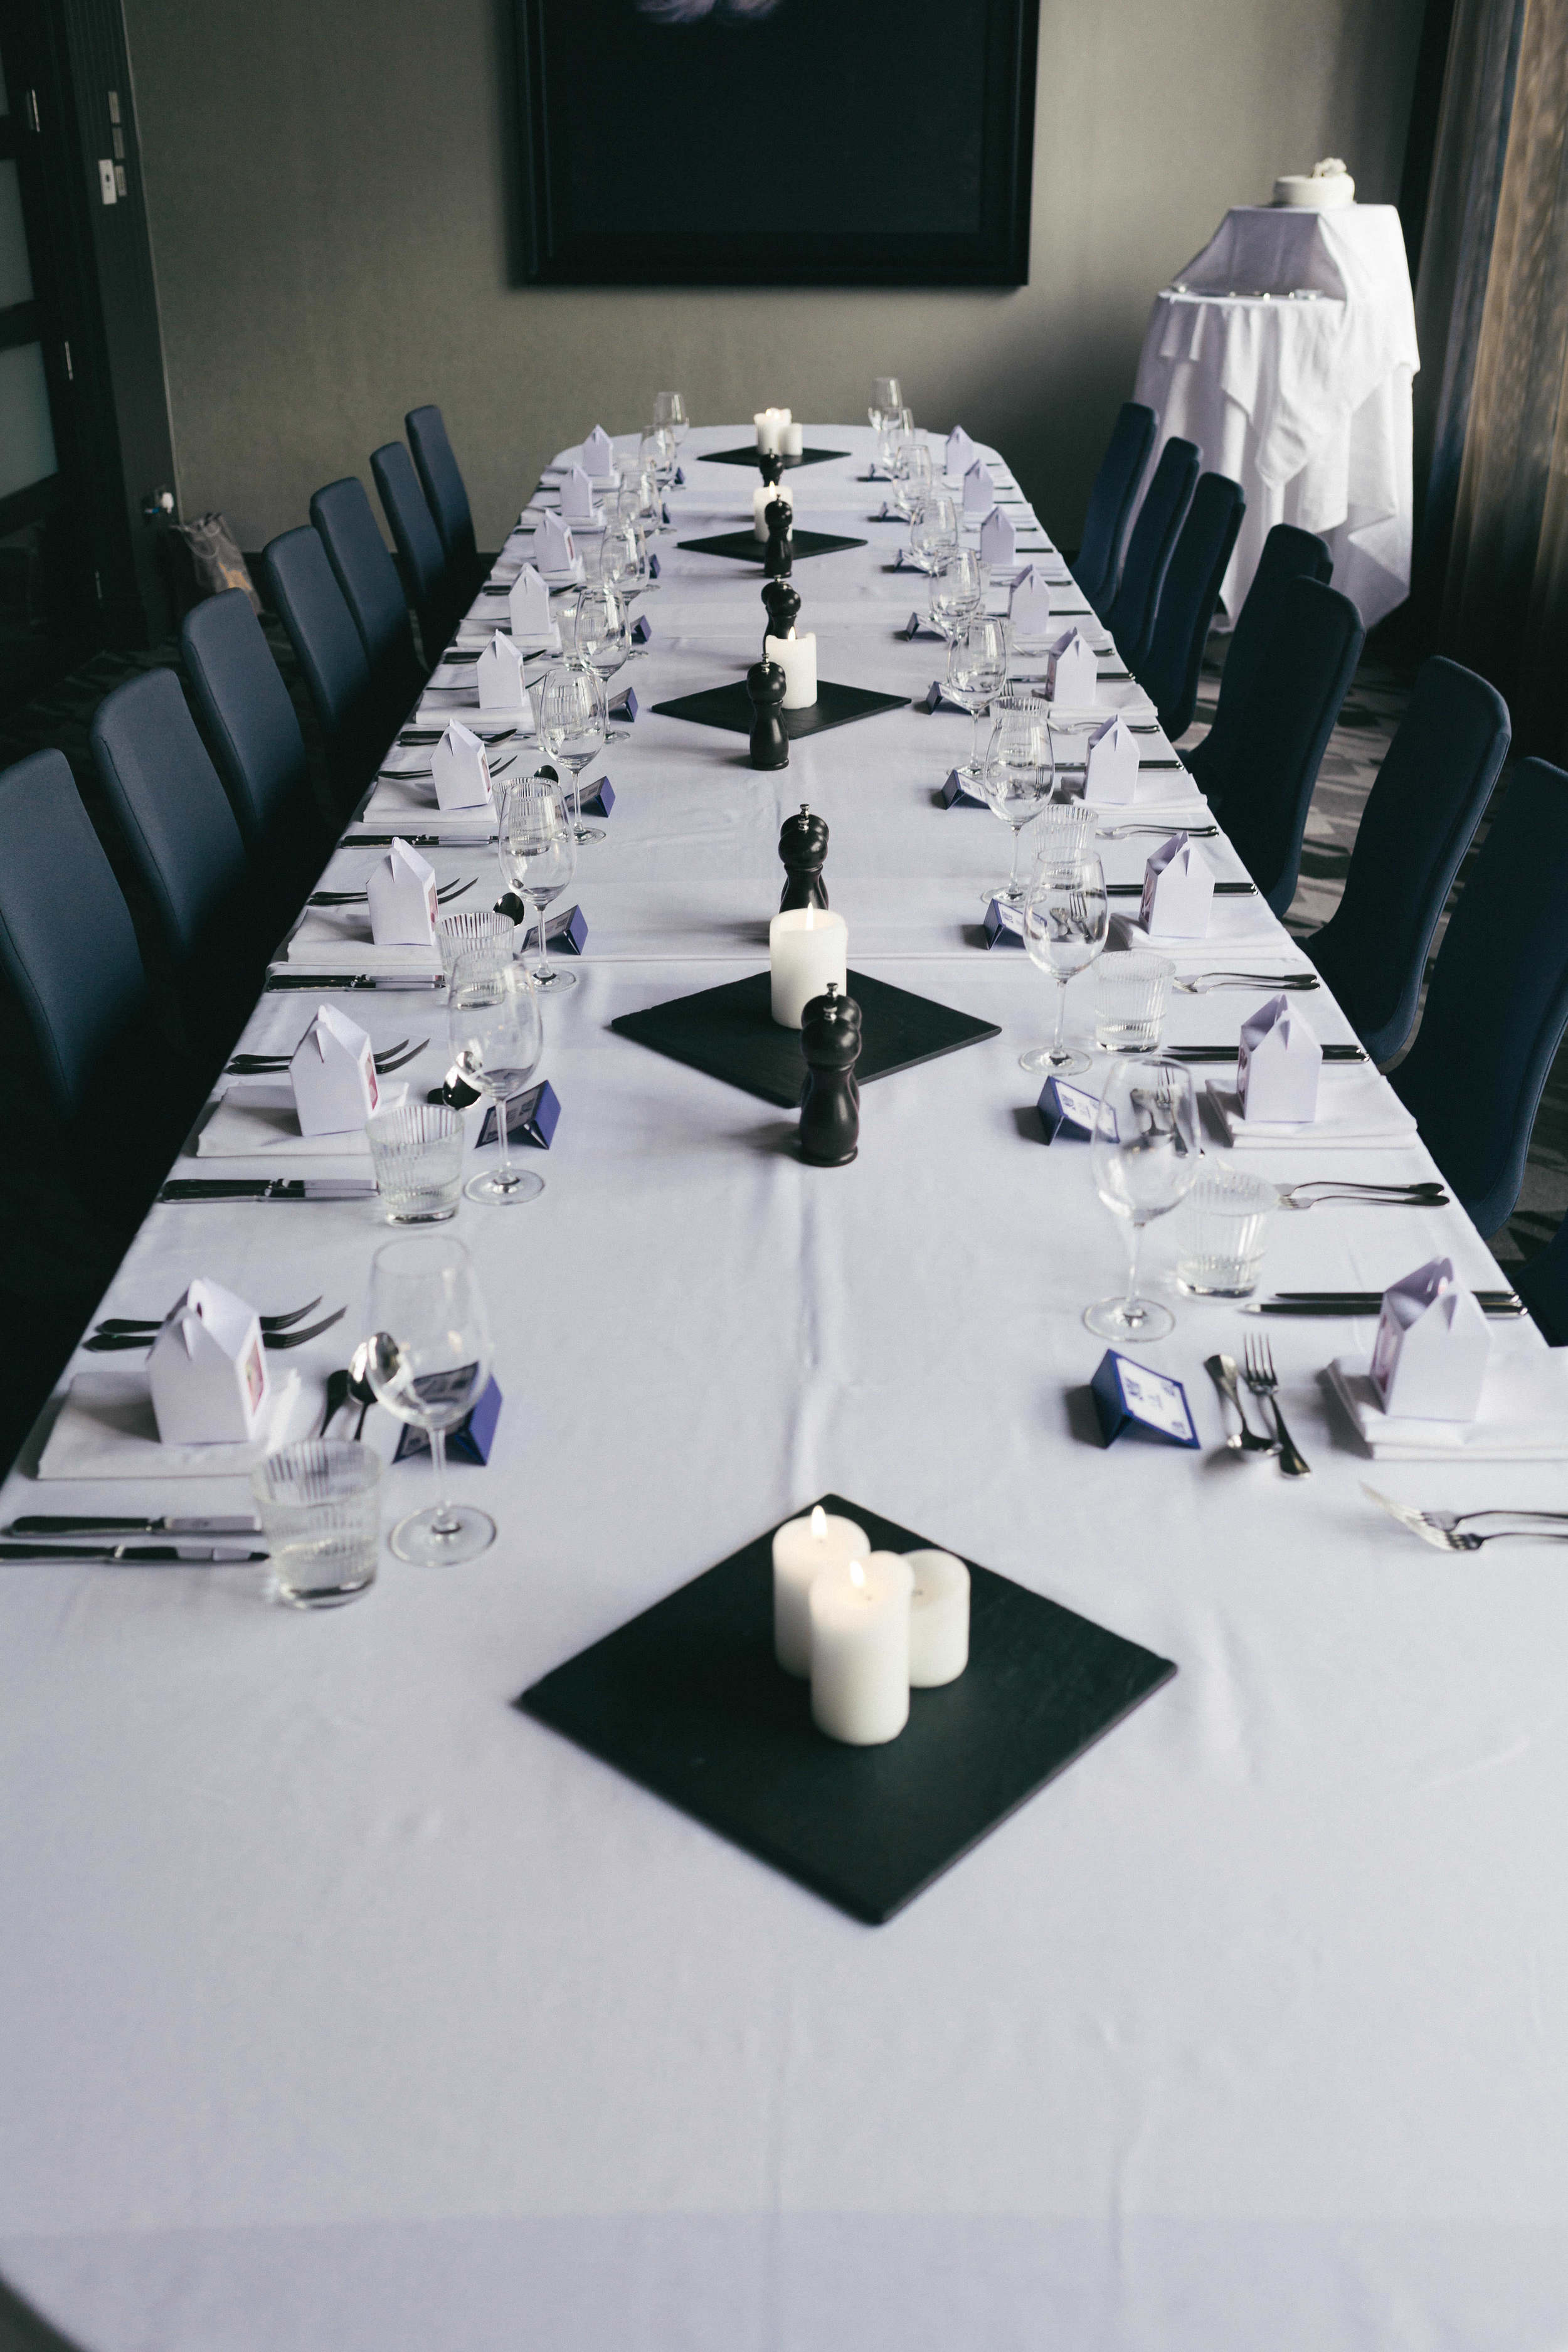 A private room used for weddings at Malmaison Newcastle